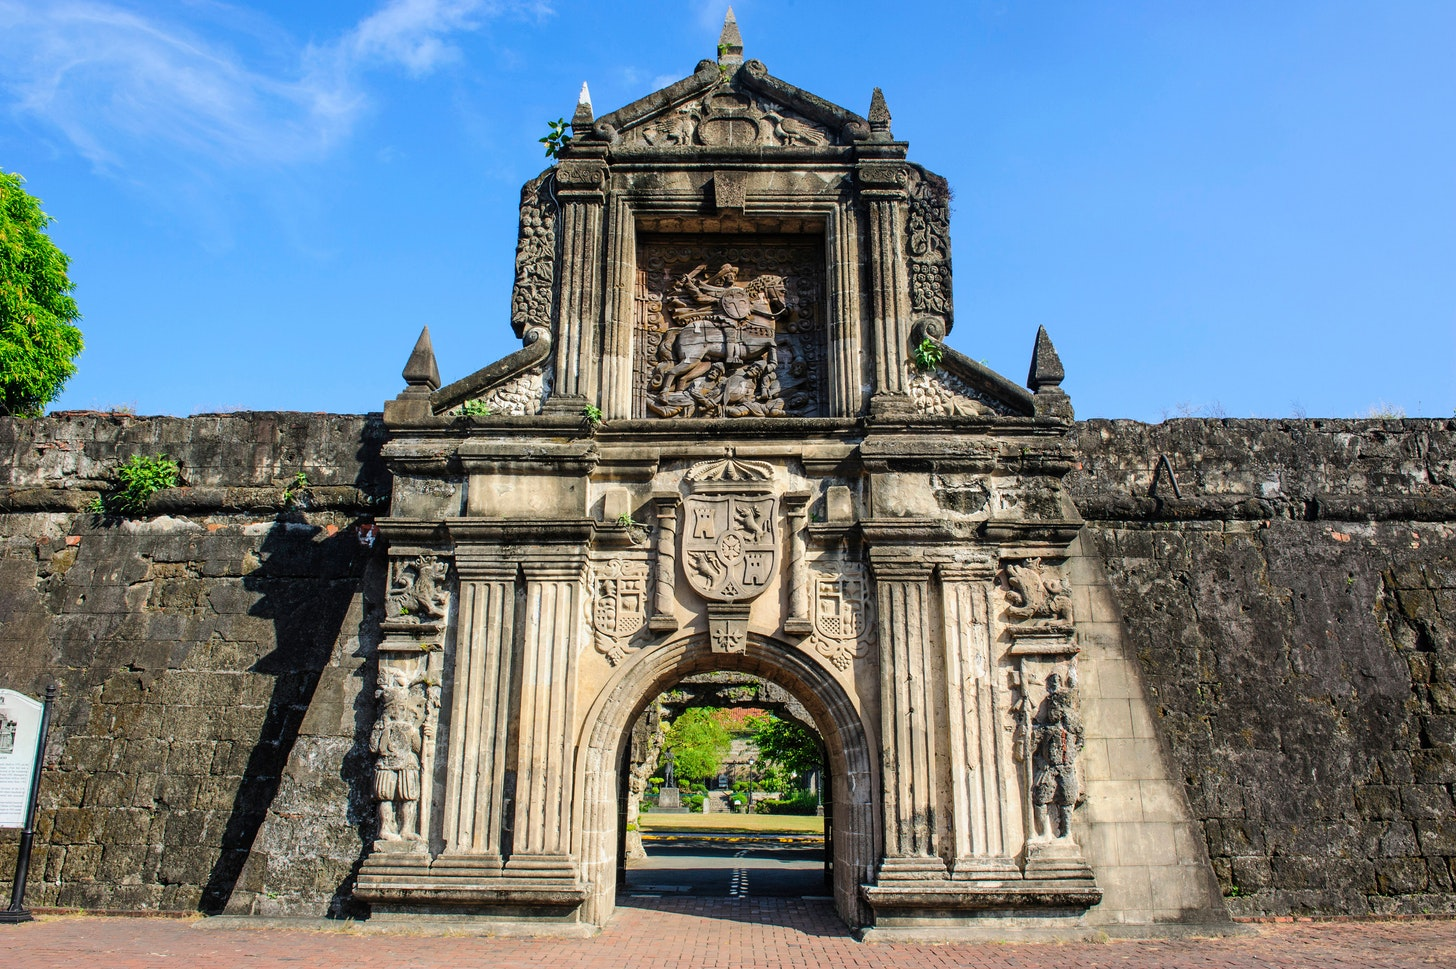 Entrance to the walled city of Intramuros Manila